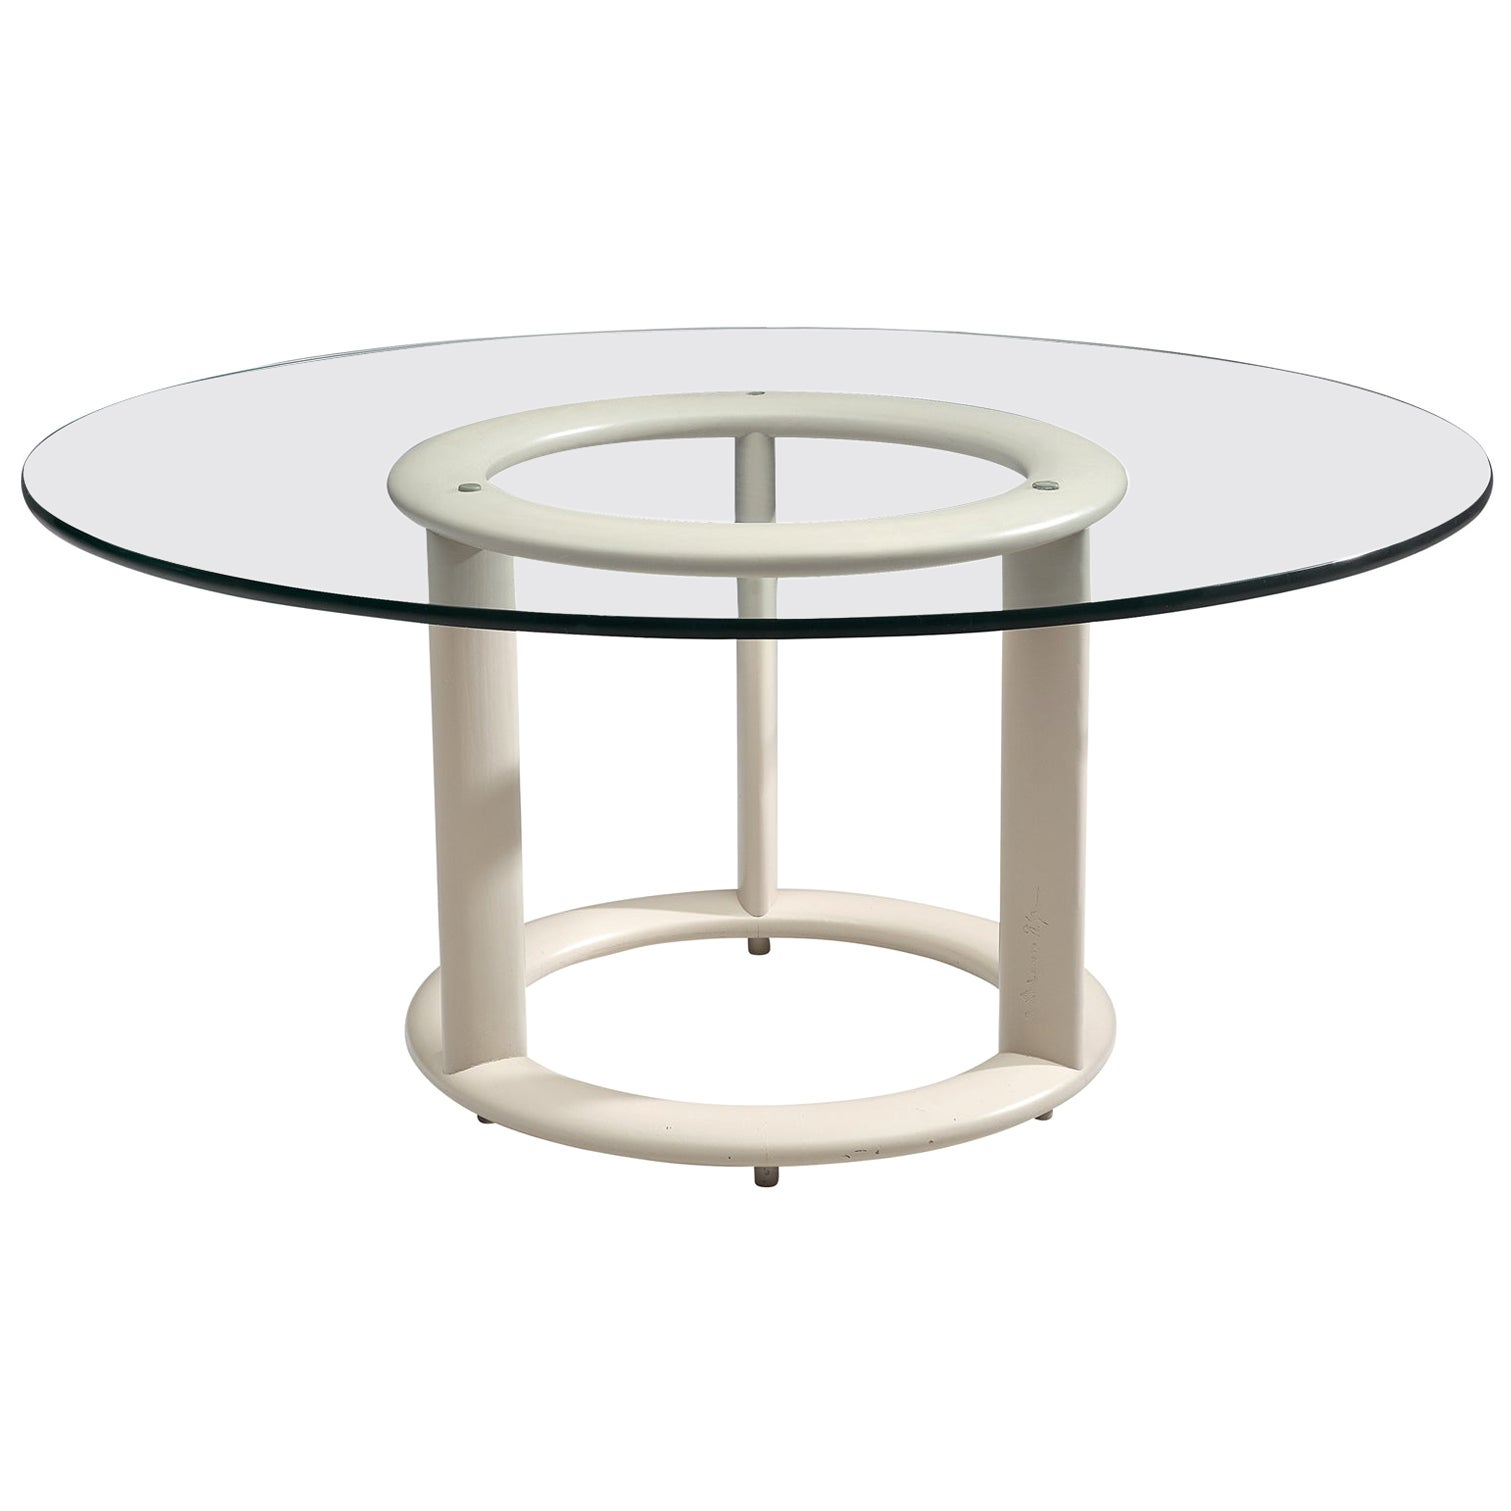 German Postmodern Round Dining Table with Glass Top